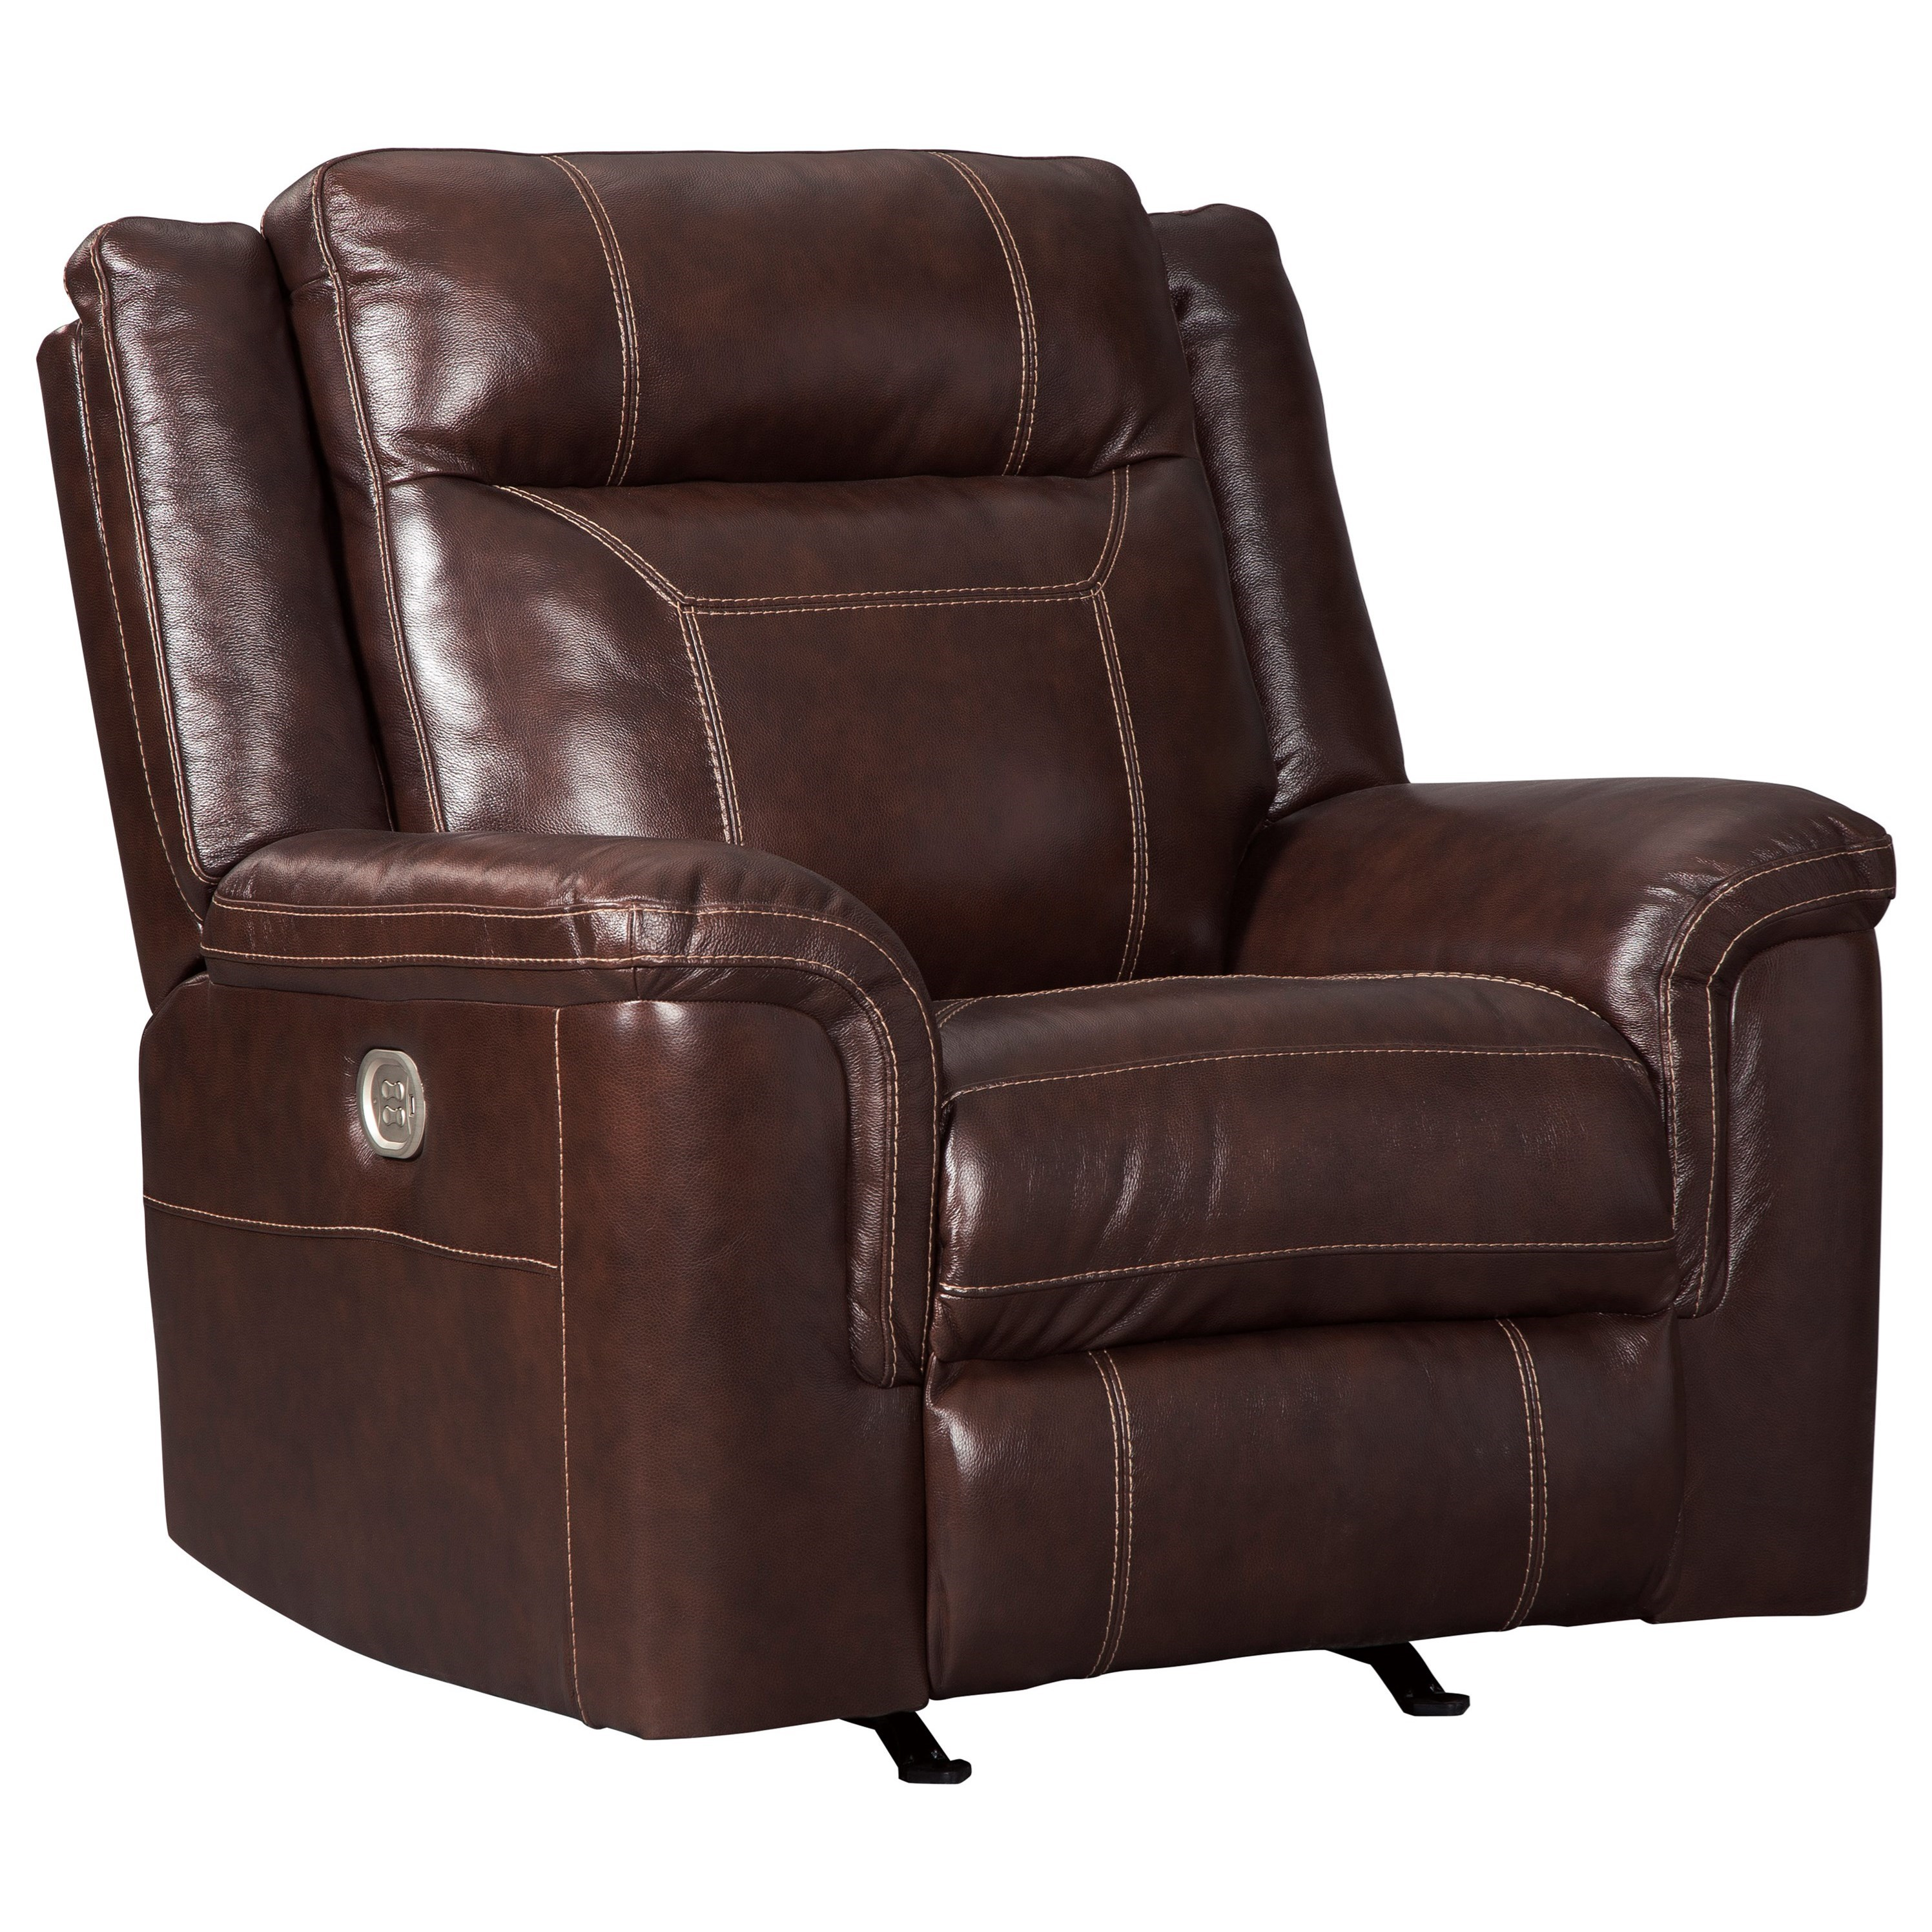 Power Reclining Chairs Signature Design By Ashley Wyline Power Rocker Recliner